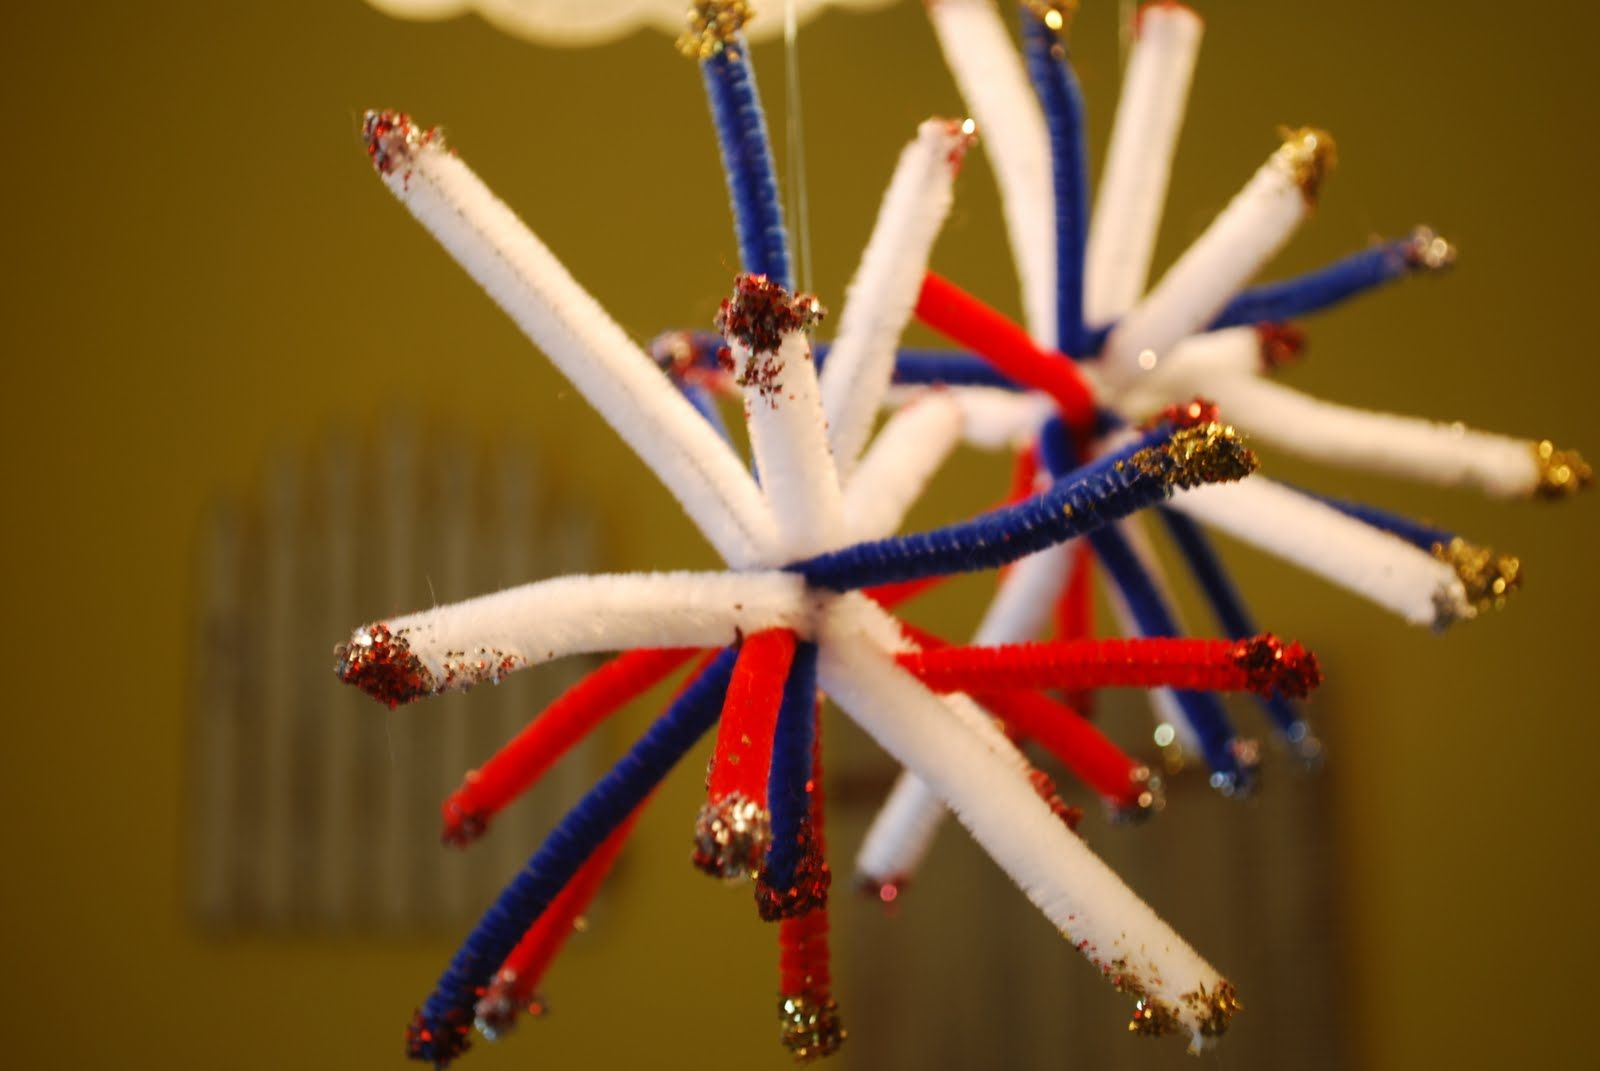 """Dip the ends of pipe cleaners into glue and then into glitter.  Twist one pipe cleaner around the middle of the others to cinch them together.  Fan out to make """"fireworks"""".  Loop thread around one end and hang.  Repeat the phrases """"Oooh"""" and """"Ahhh"""" over and over"""